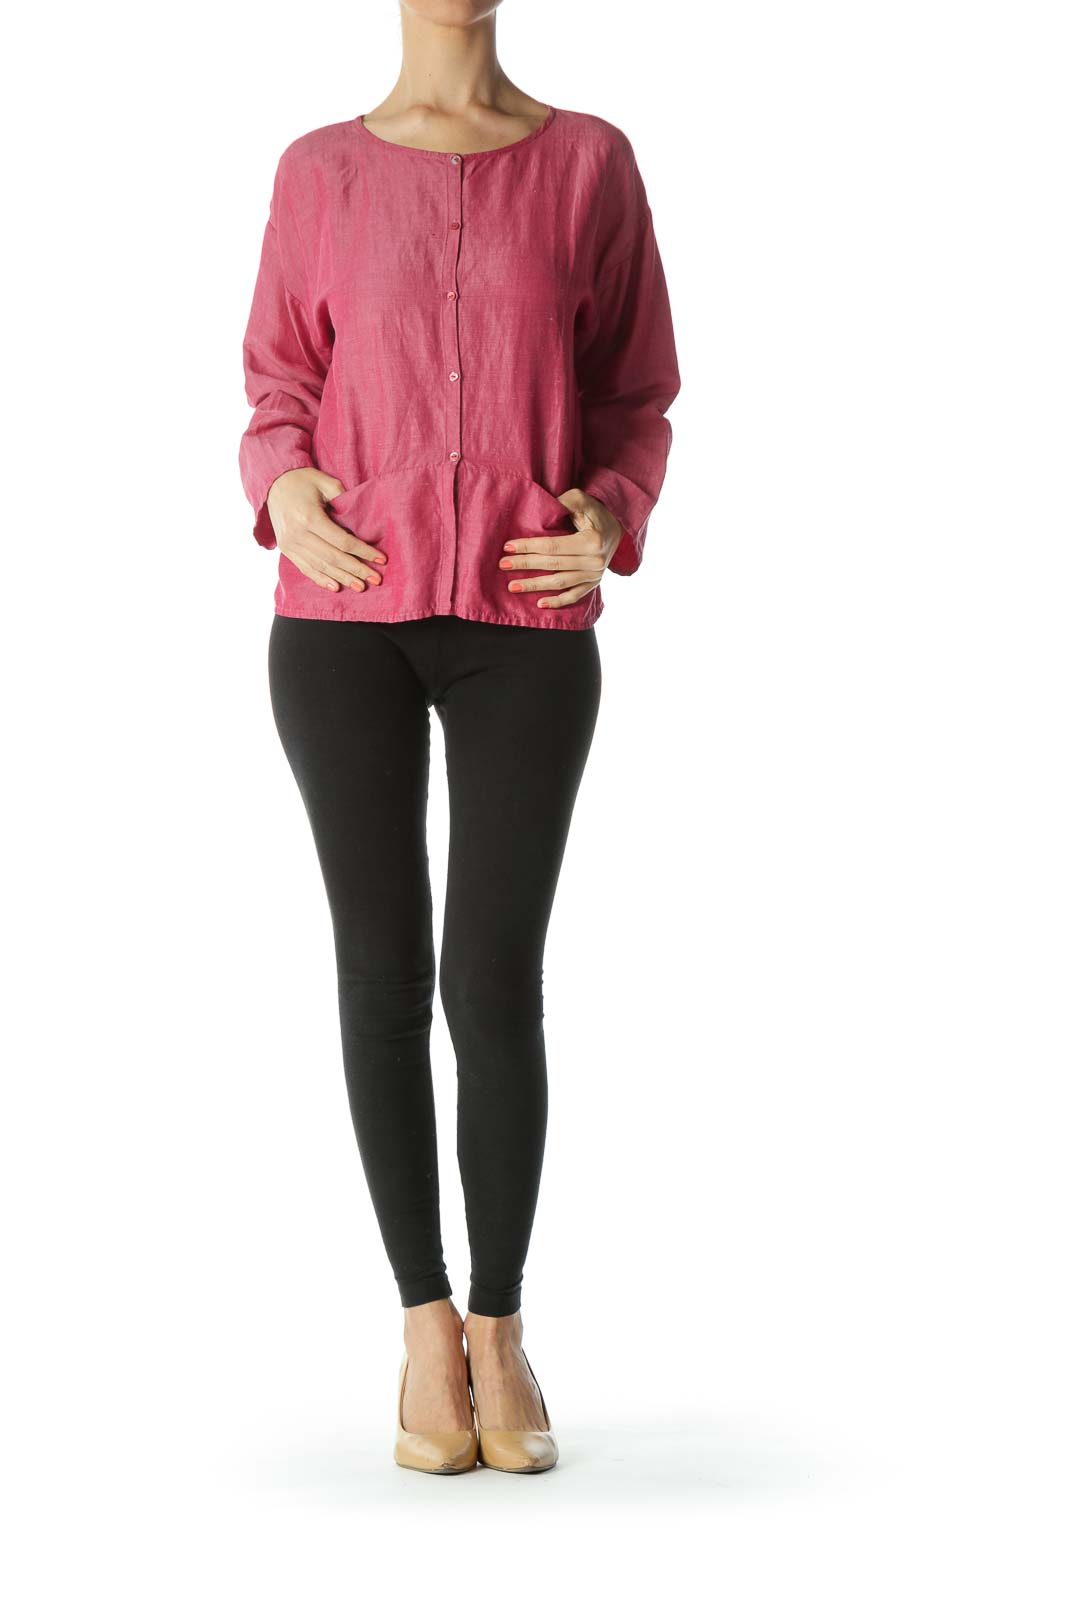 Pink Linen Silk Buttoned Light-Weight Pocketed Knit Top